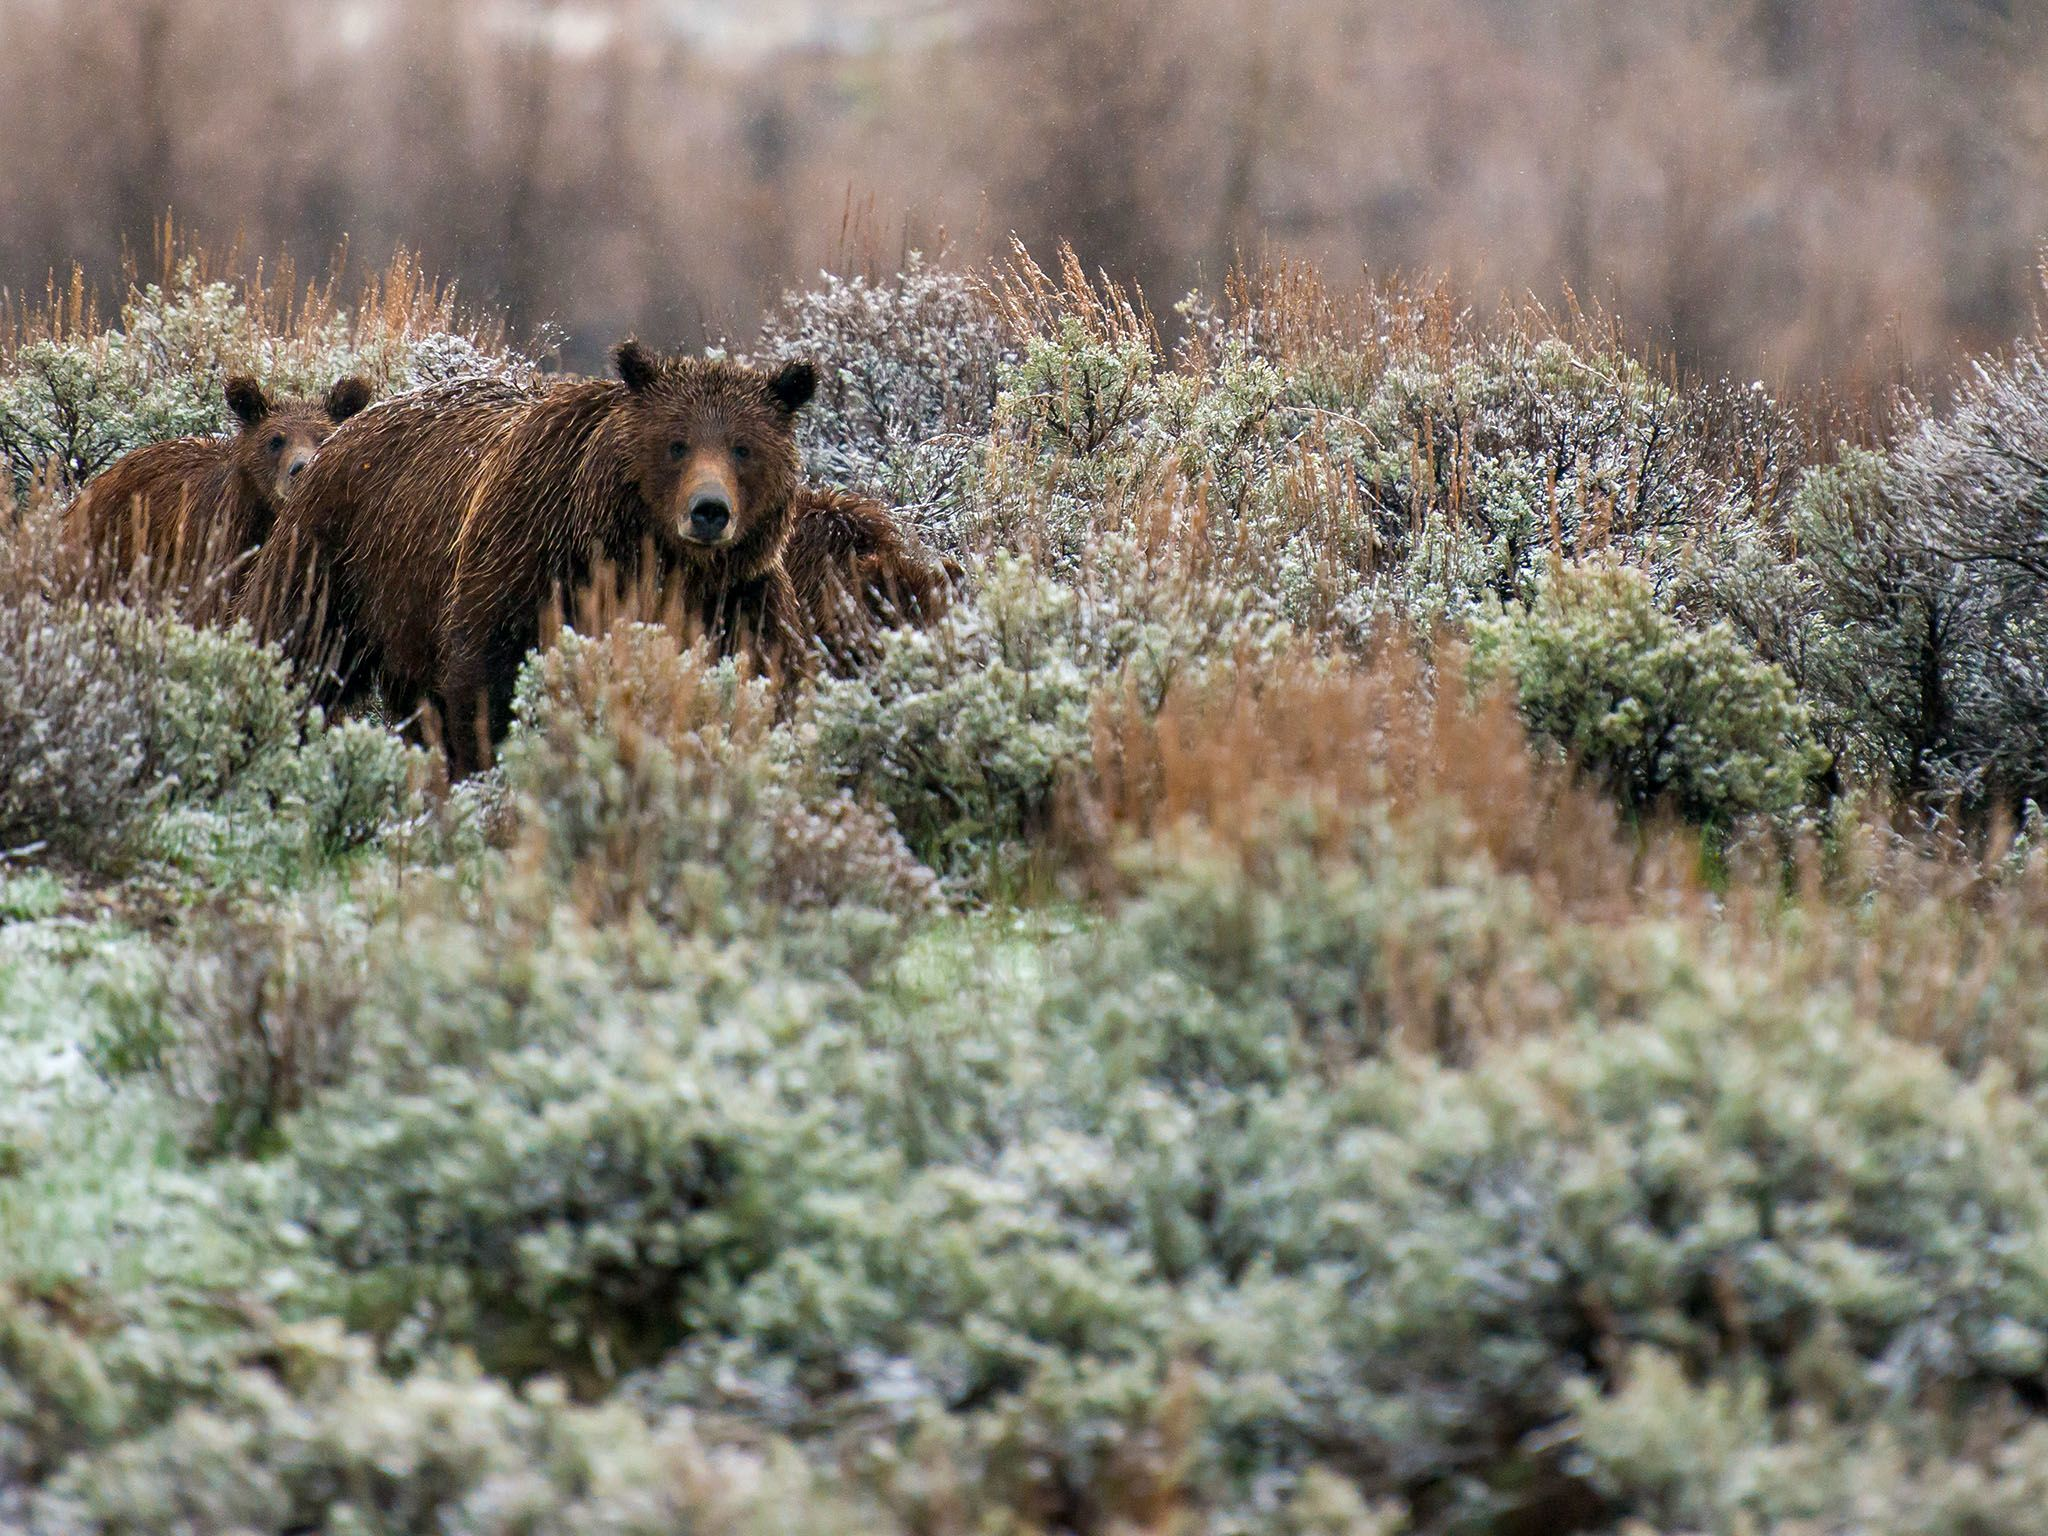 Grand Teton National Park, Wyo.: Bear 399 in sage brush with her two yearling cubs. This image is... [Фото дня - Ноябрь 2015]